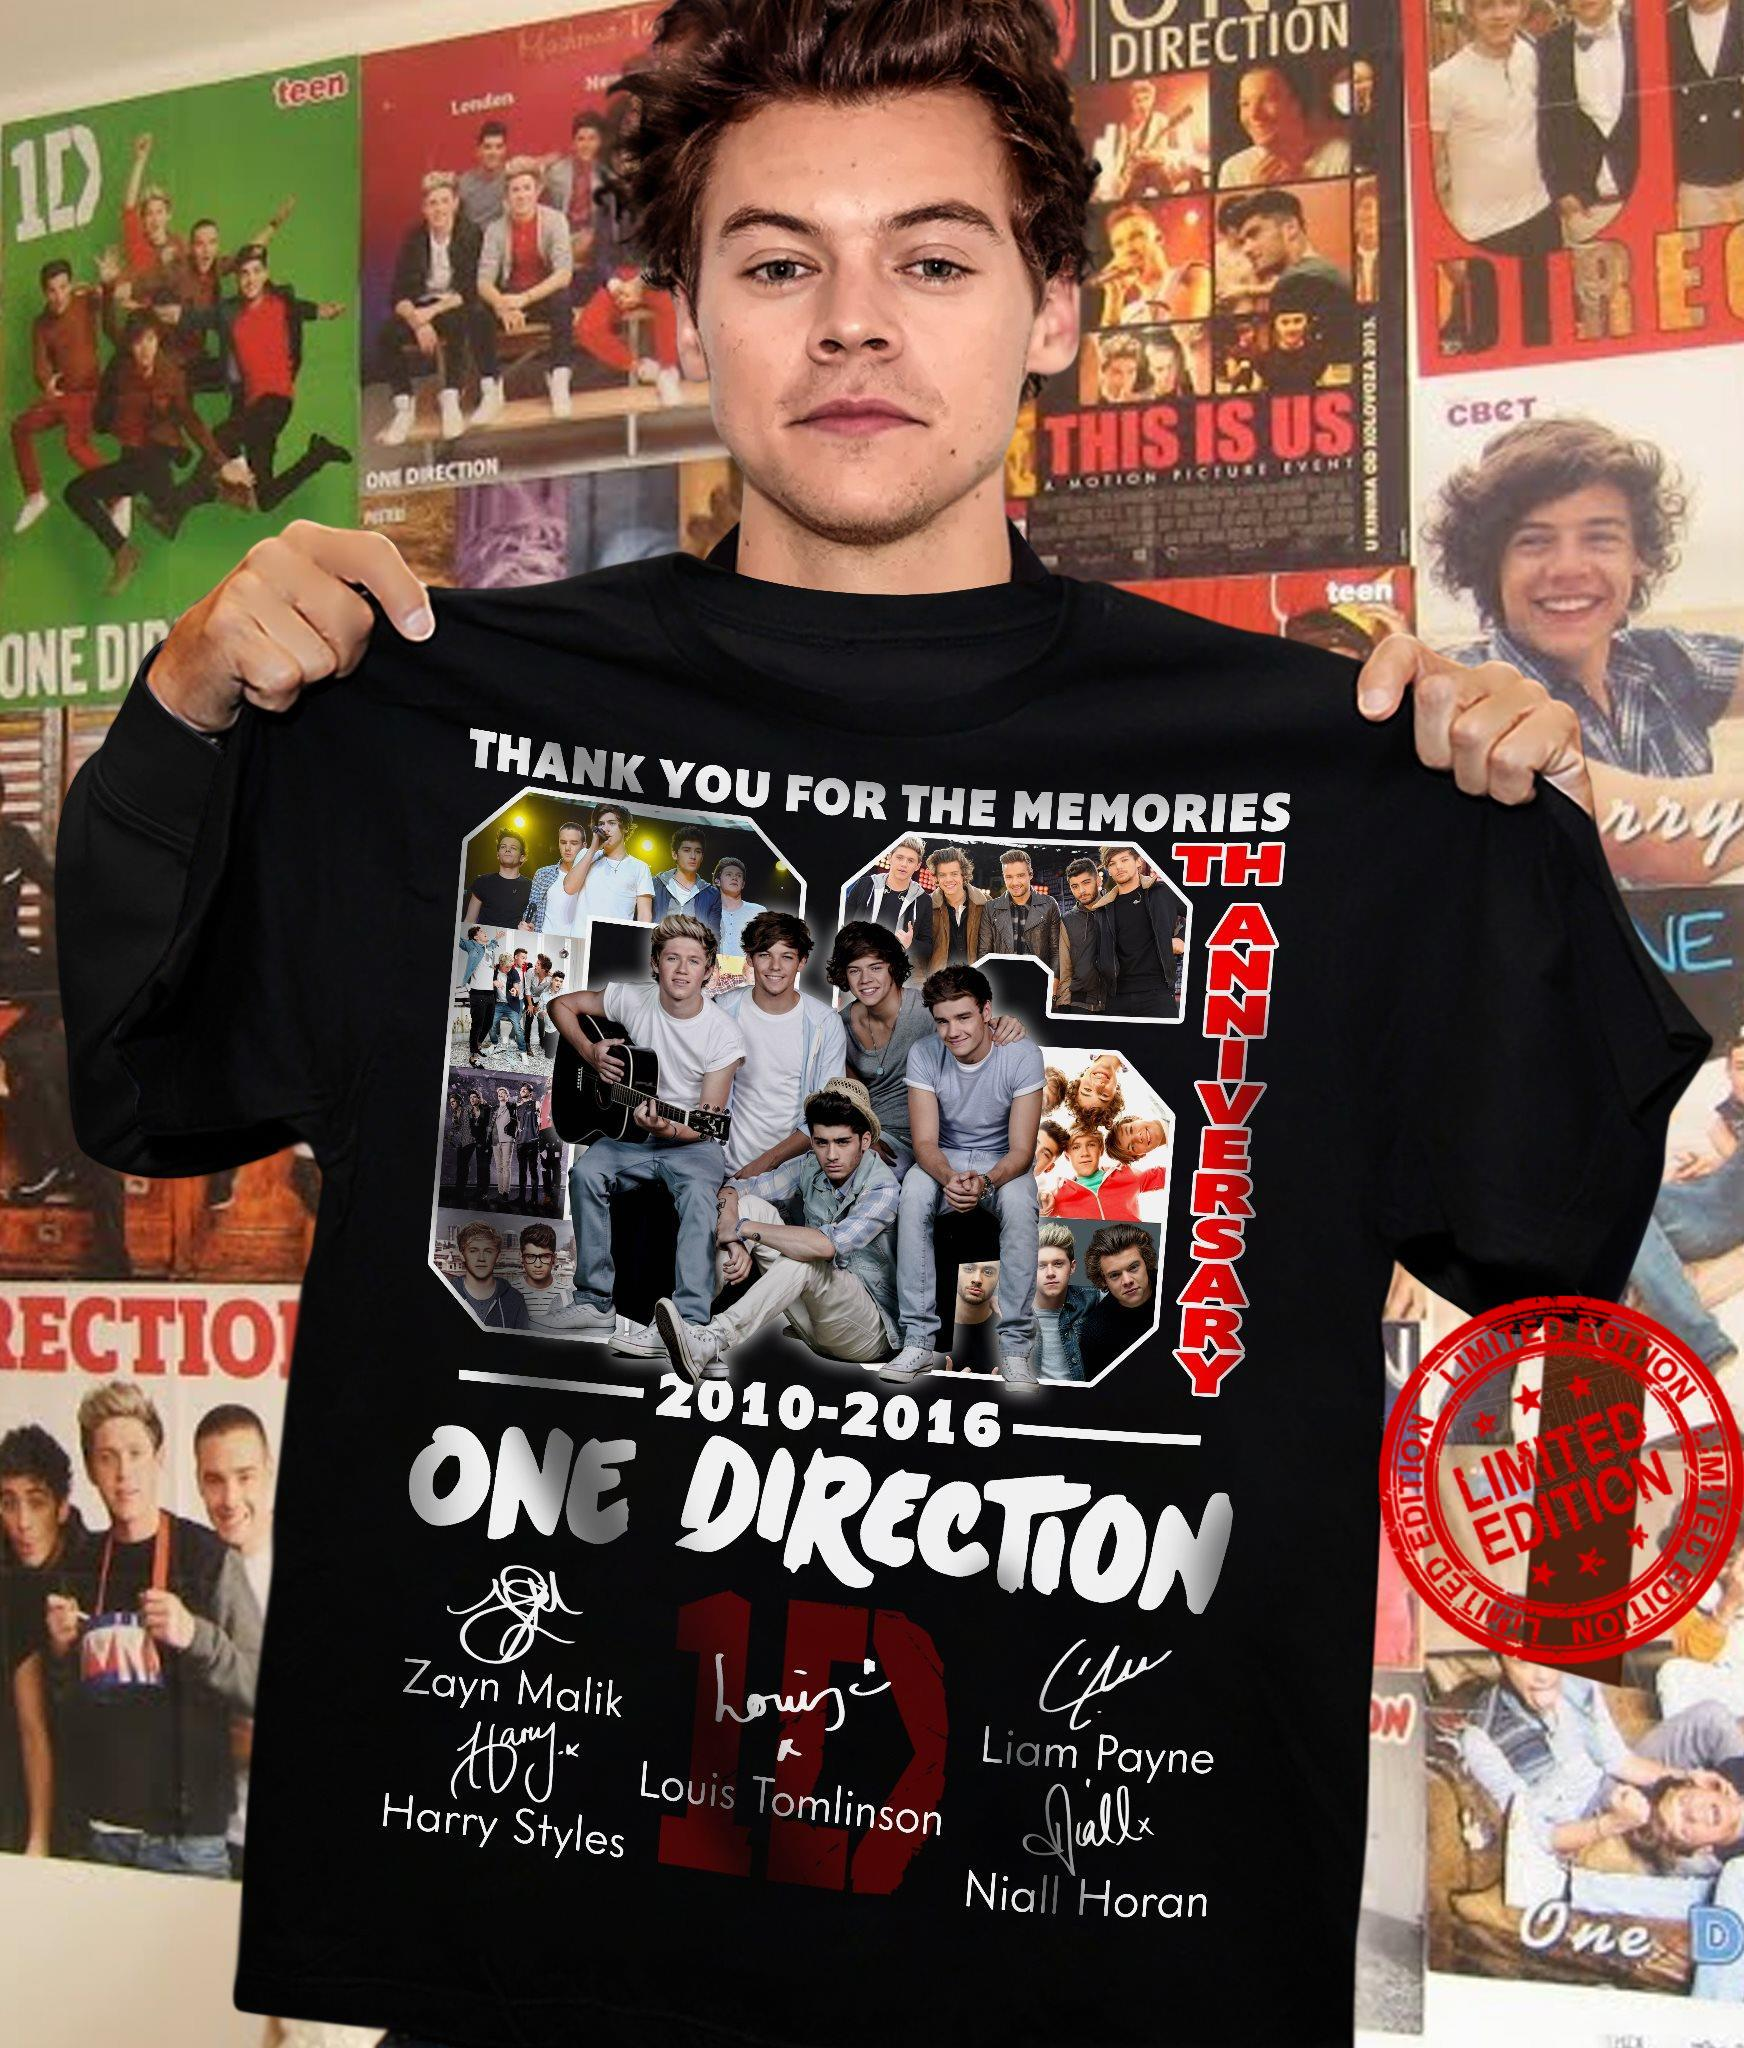 Thank You For The Memories 66th Anniversary 2010-2016 One Direction Shirt